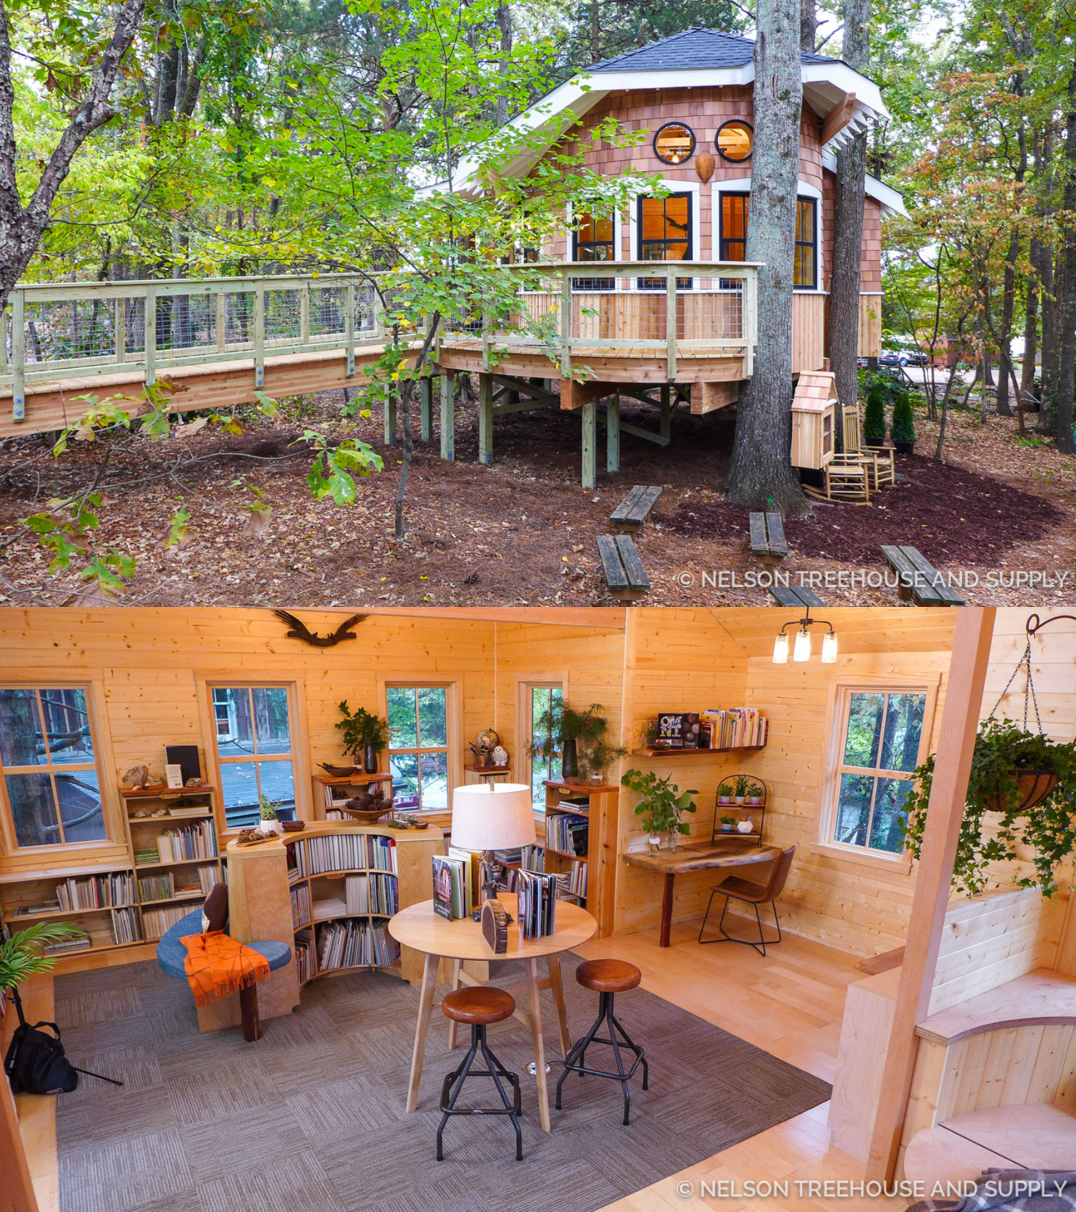 Groovy The Library Treehouse Every Backyard Should Have Download Free Architecture Designs Scobabritishbridgeorg